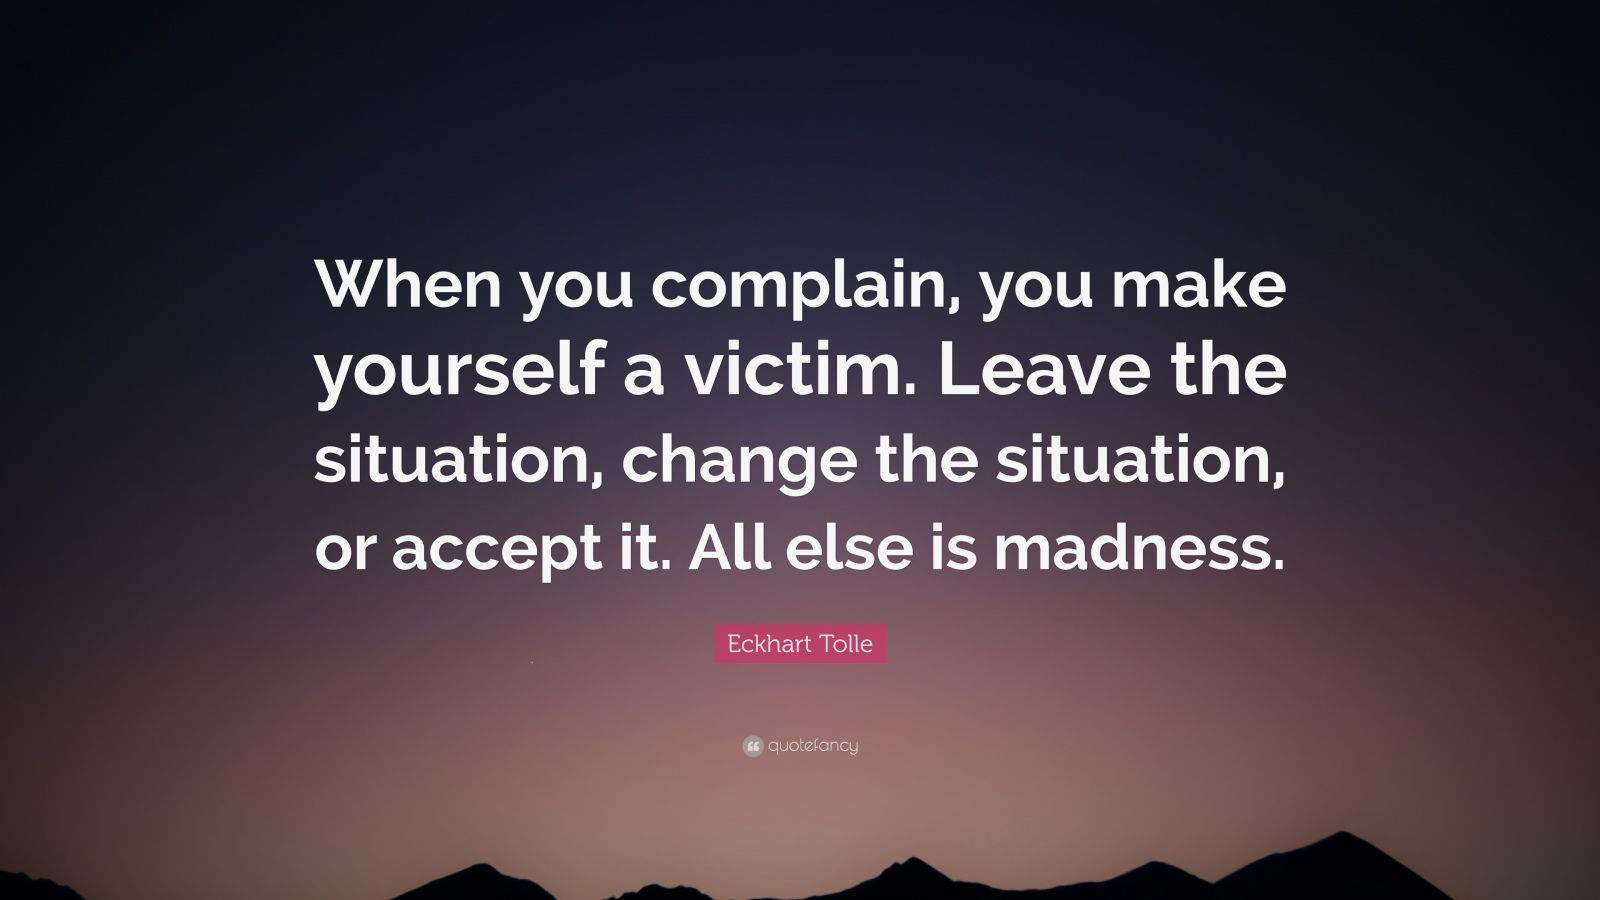 "Eckhart Tolle Quote: ""When you complain, you make yourself a victim. Leave the situation, change the situation, or accept it. All else is madness."""